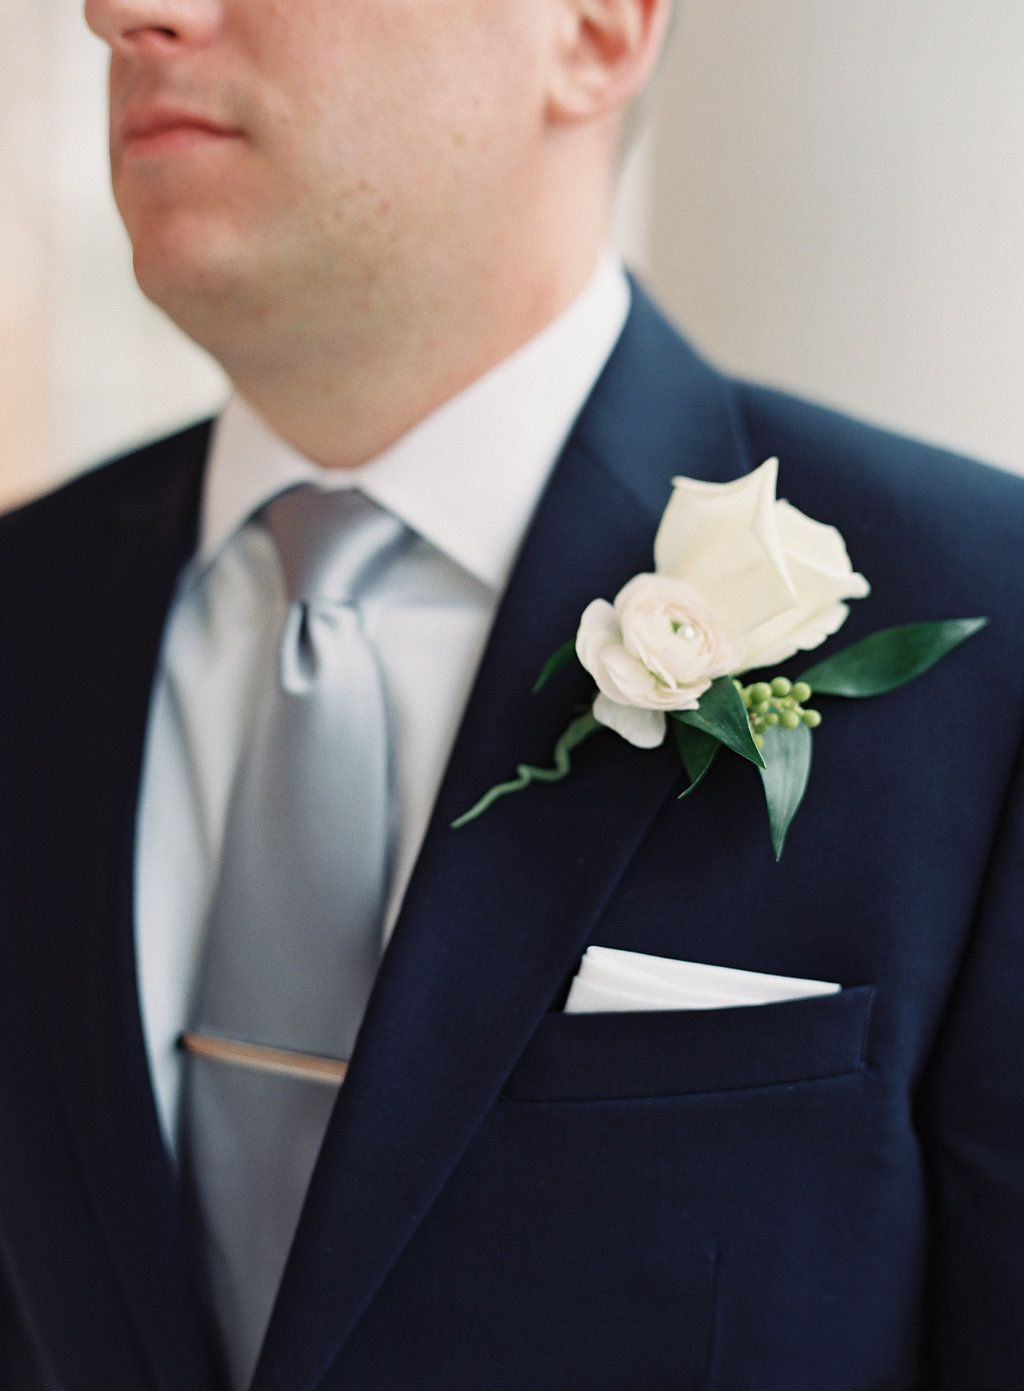 Slate blue wedding decor  Bedford Springs wedding flowers boutonniere groom white rose